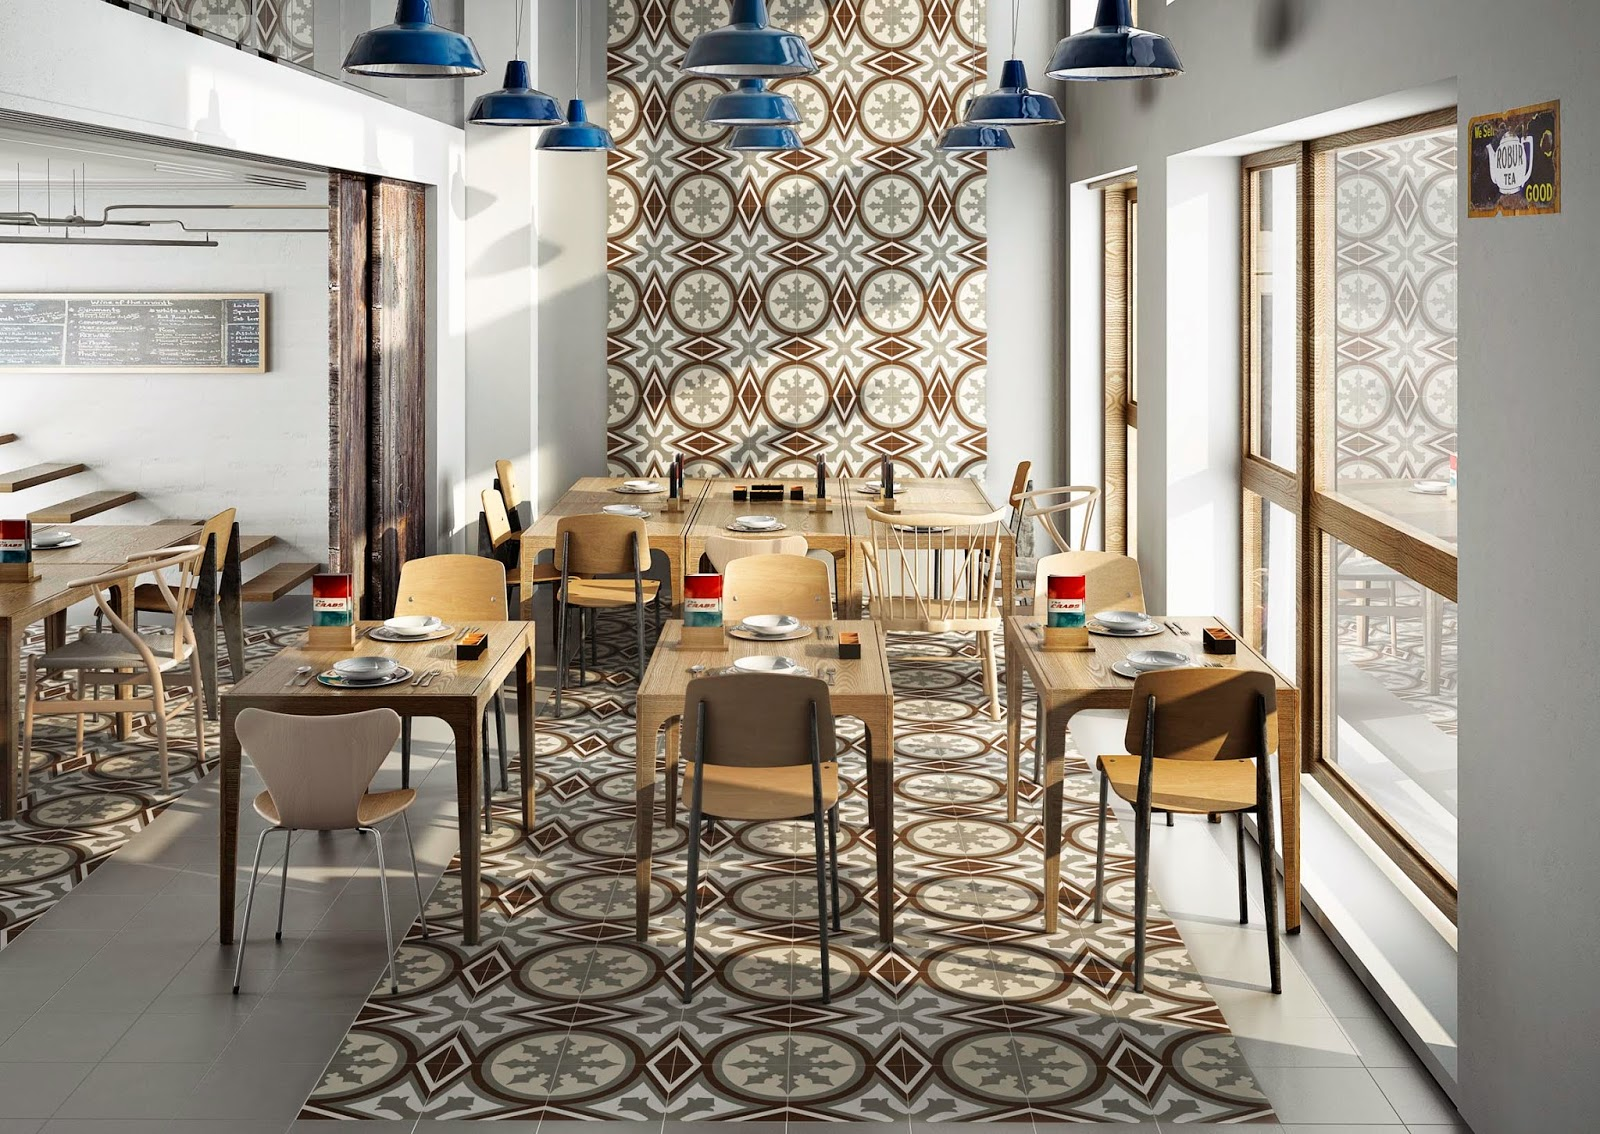 Aparici Vanguard embraces bold pattern